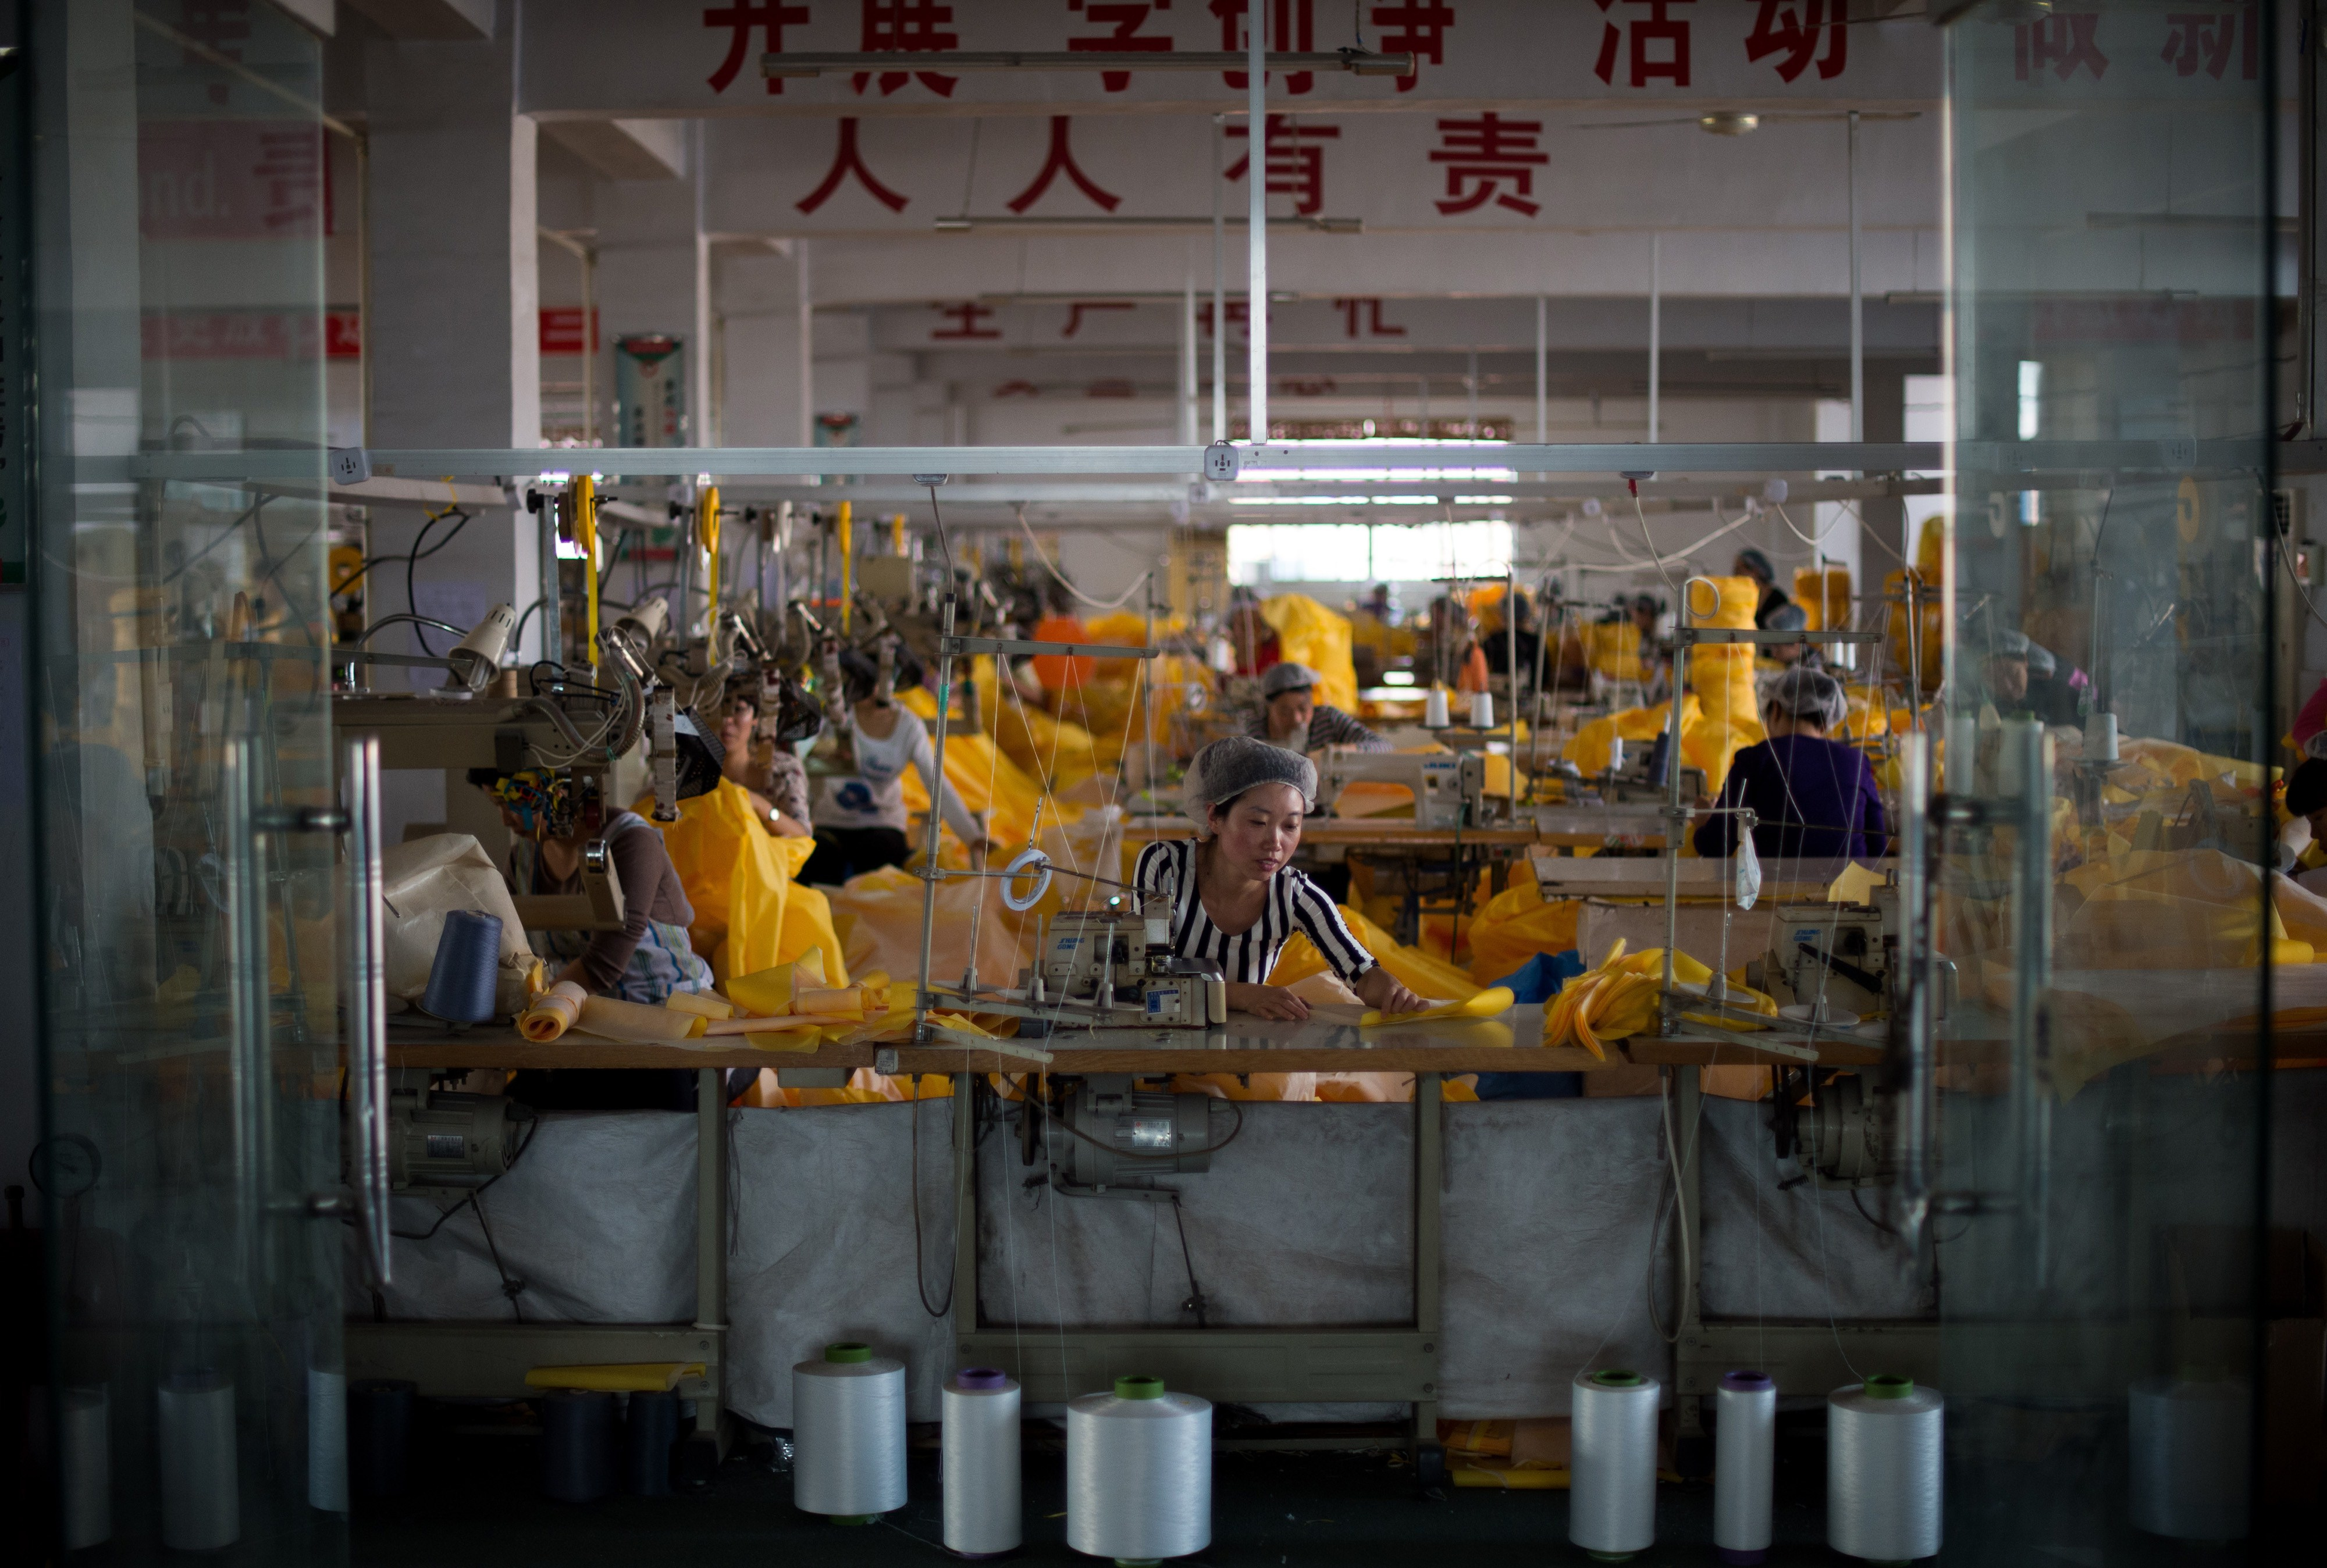 Oct. 24, 2014. Women work on the CT1SL428, a protective suit for use in handling people infected with the Ebola virus, in a sewing room of Lakeland Industries Inc. in Anqiu, some 500 kilometers south of Bejing, China.